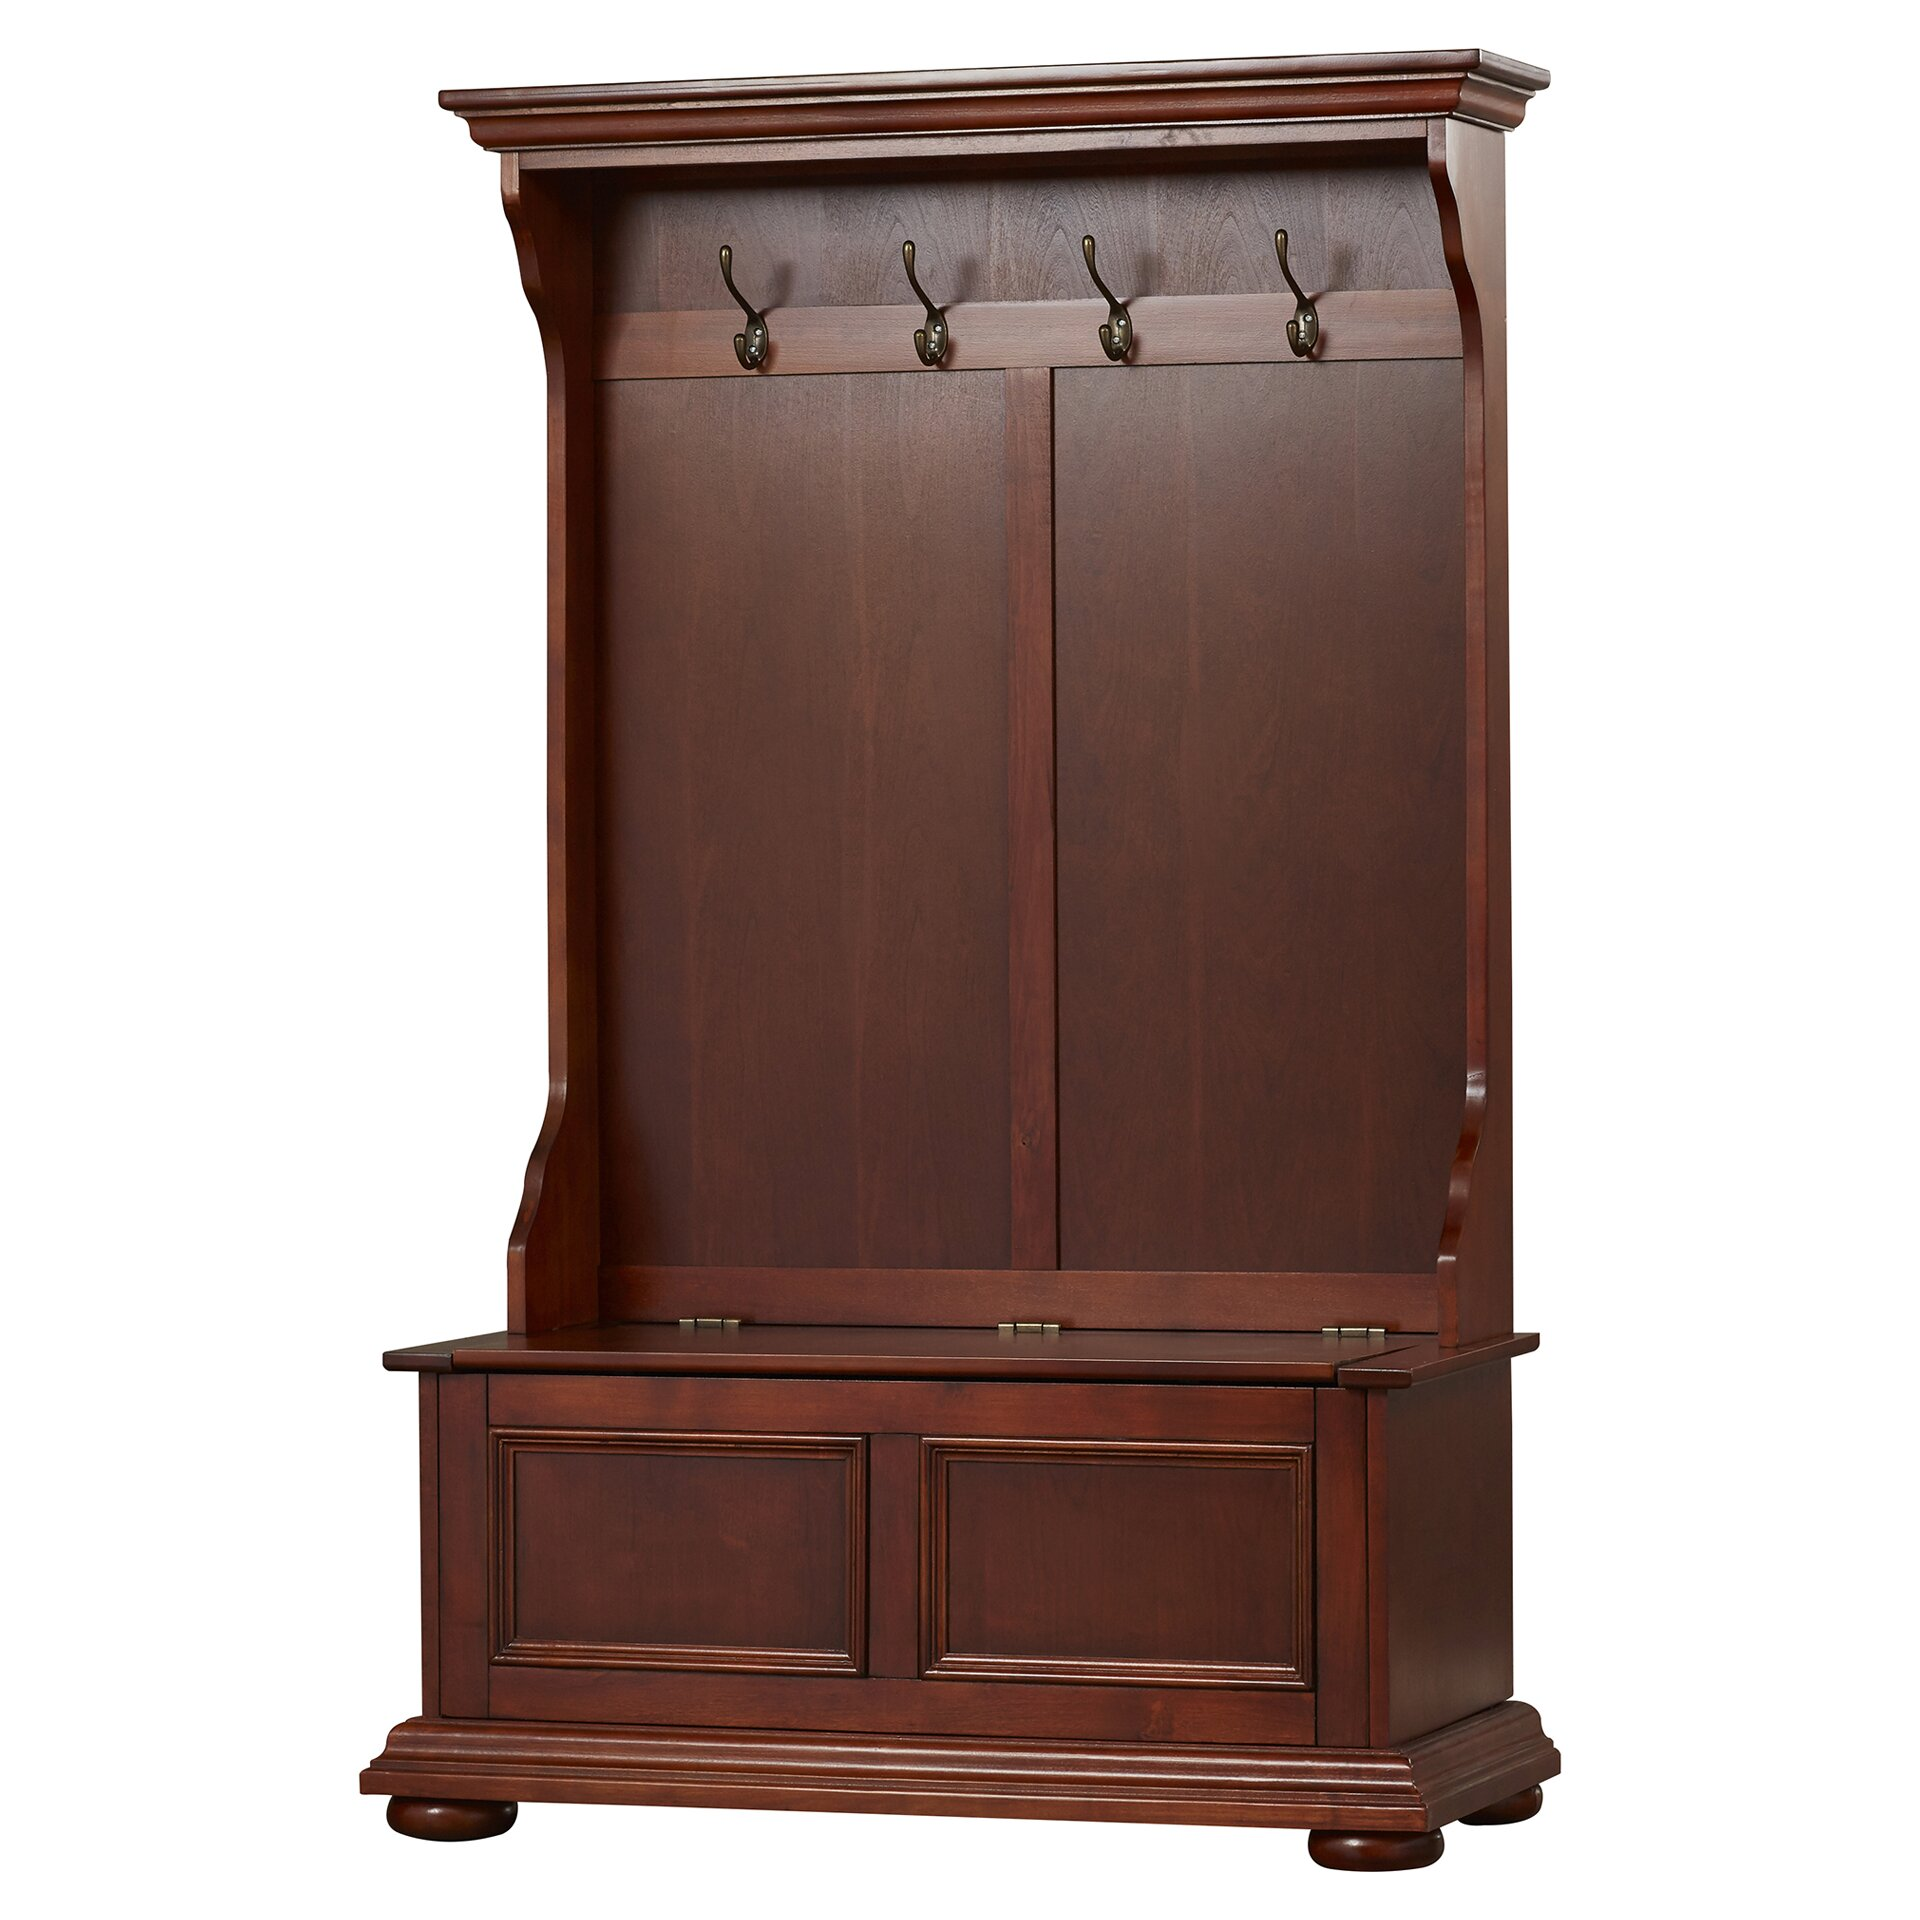 Chilton Entryway Hall Tree DBHC4966 DBHC4966 on Antique Nursery Furniture